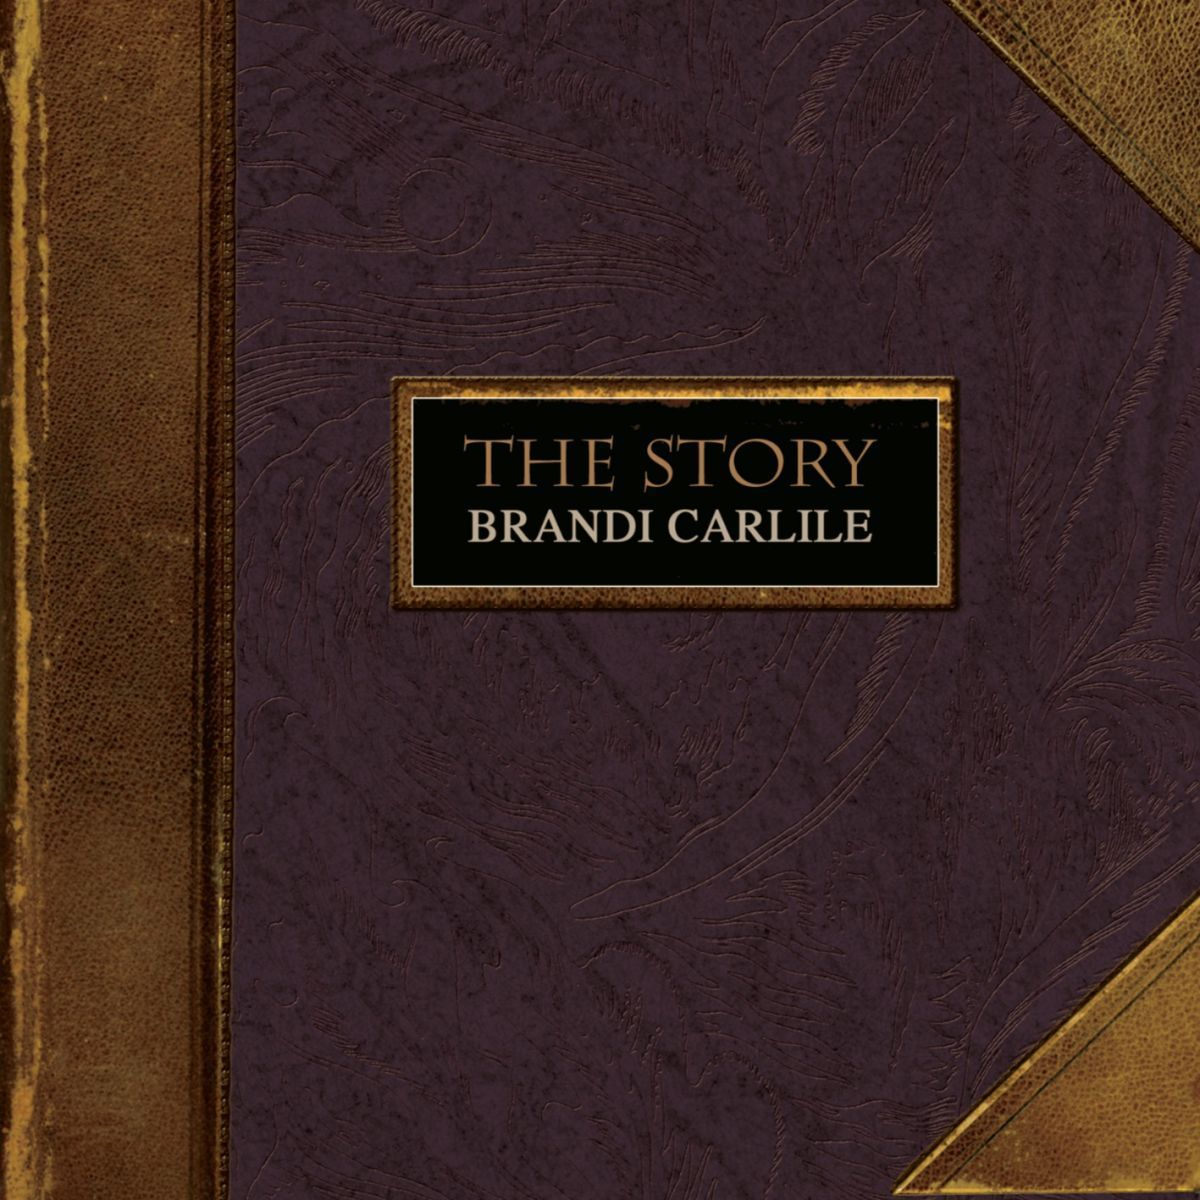 Brandi Carlile - The Story album cover